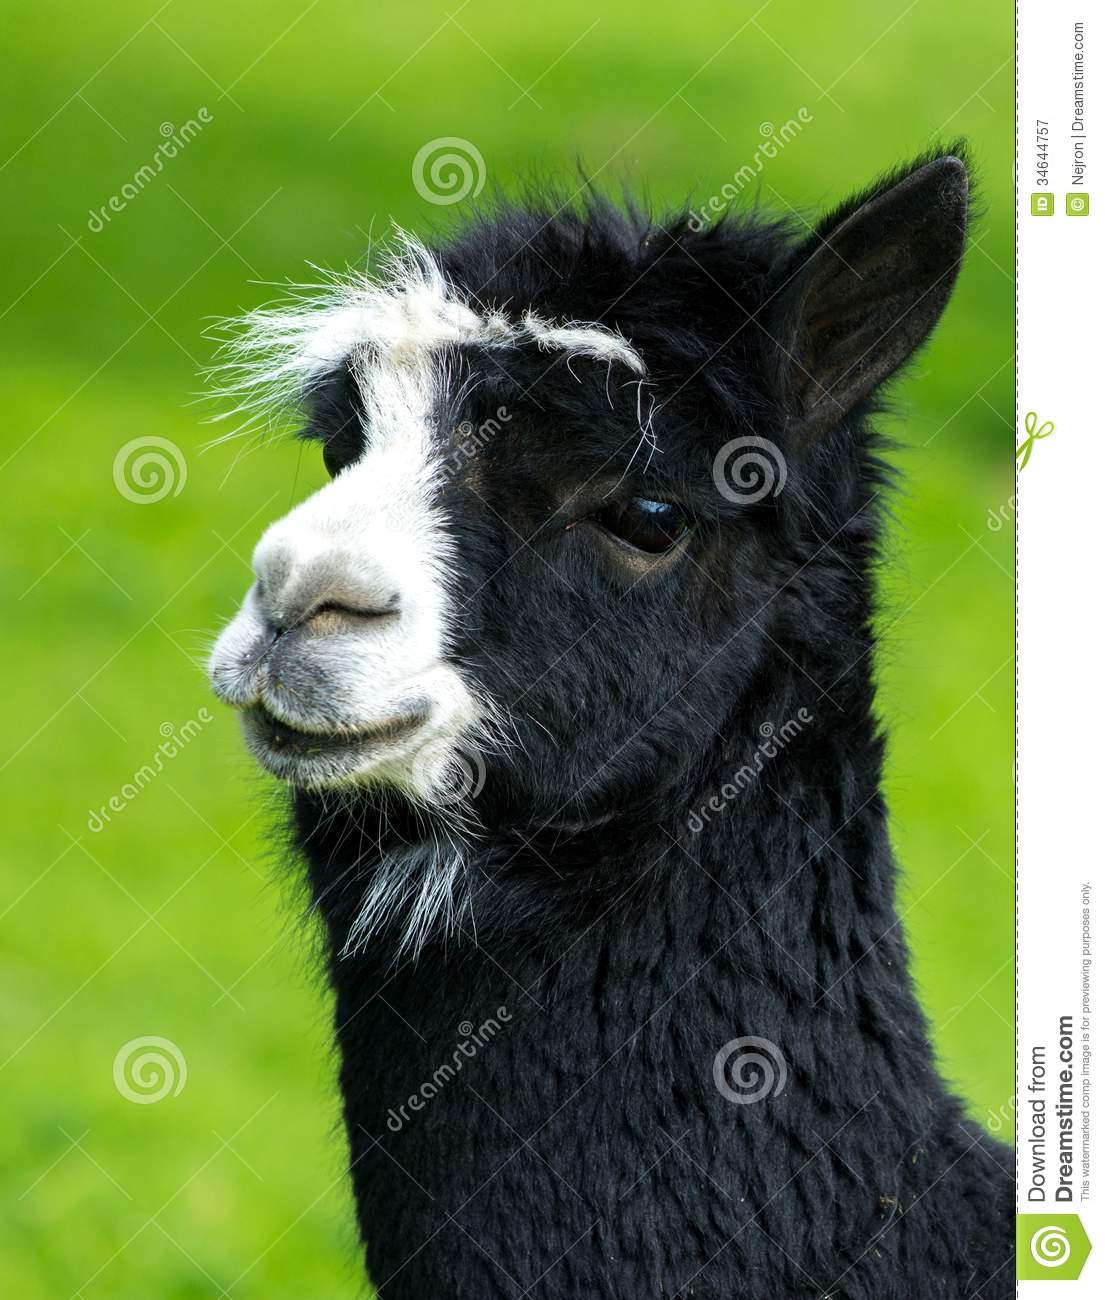 Lama Royalty Free Stock Photography Image 34644757